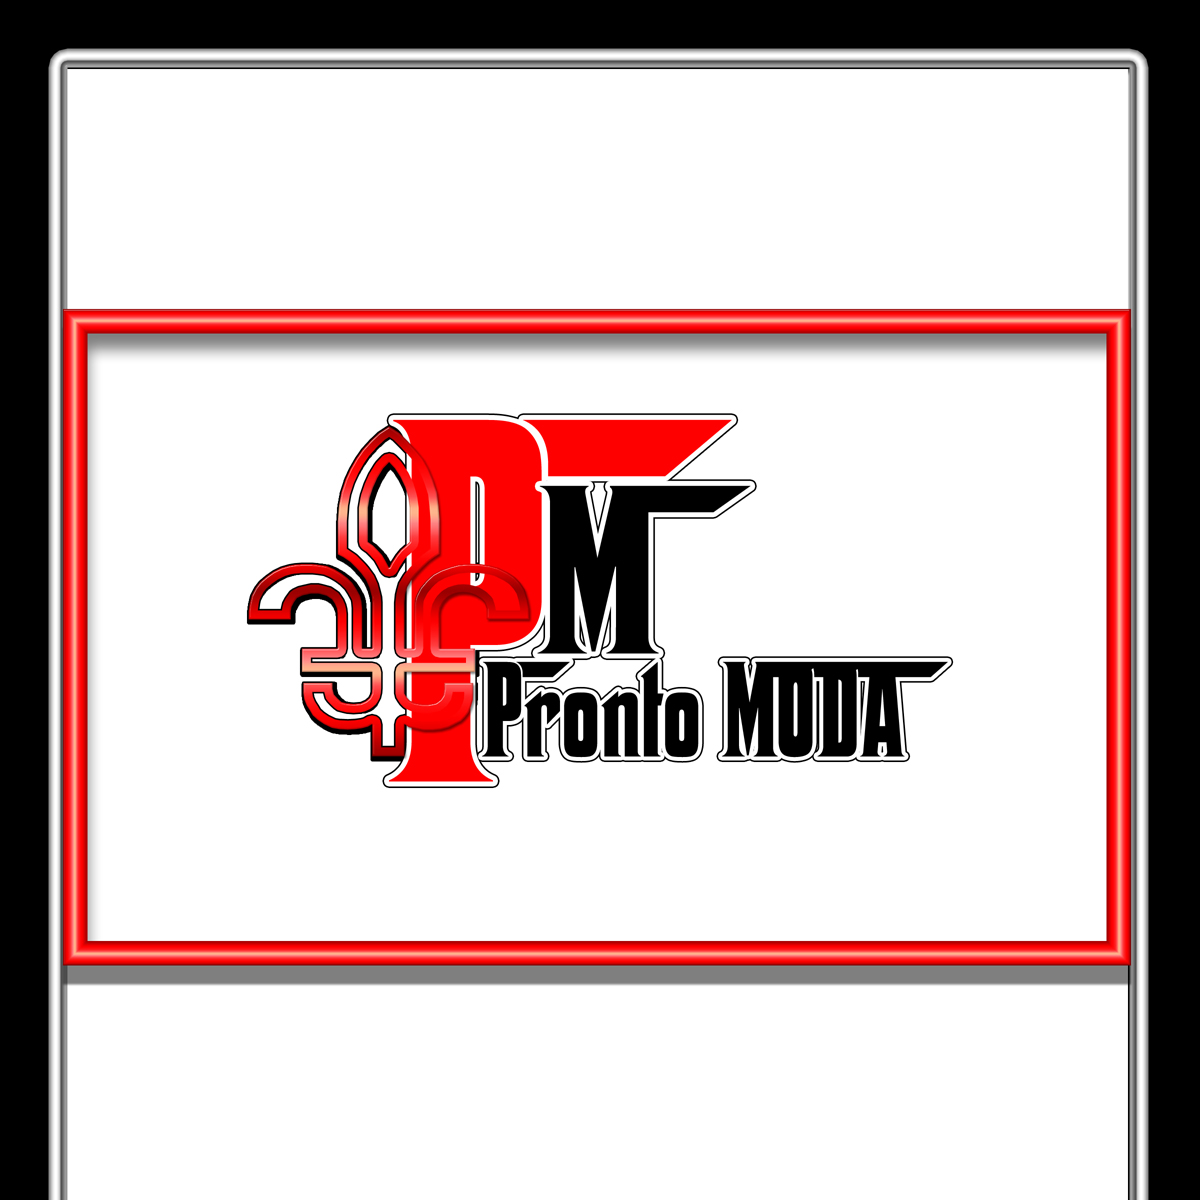 Logo Design by MITUCA ANDREI - Entry No. 27 in the Logo Design Contest Captivating Logo Design for Pronto moda.